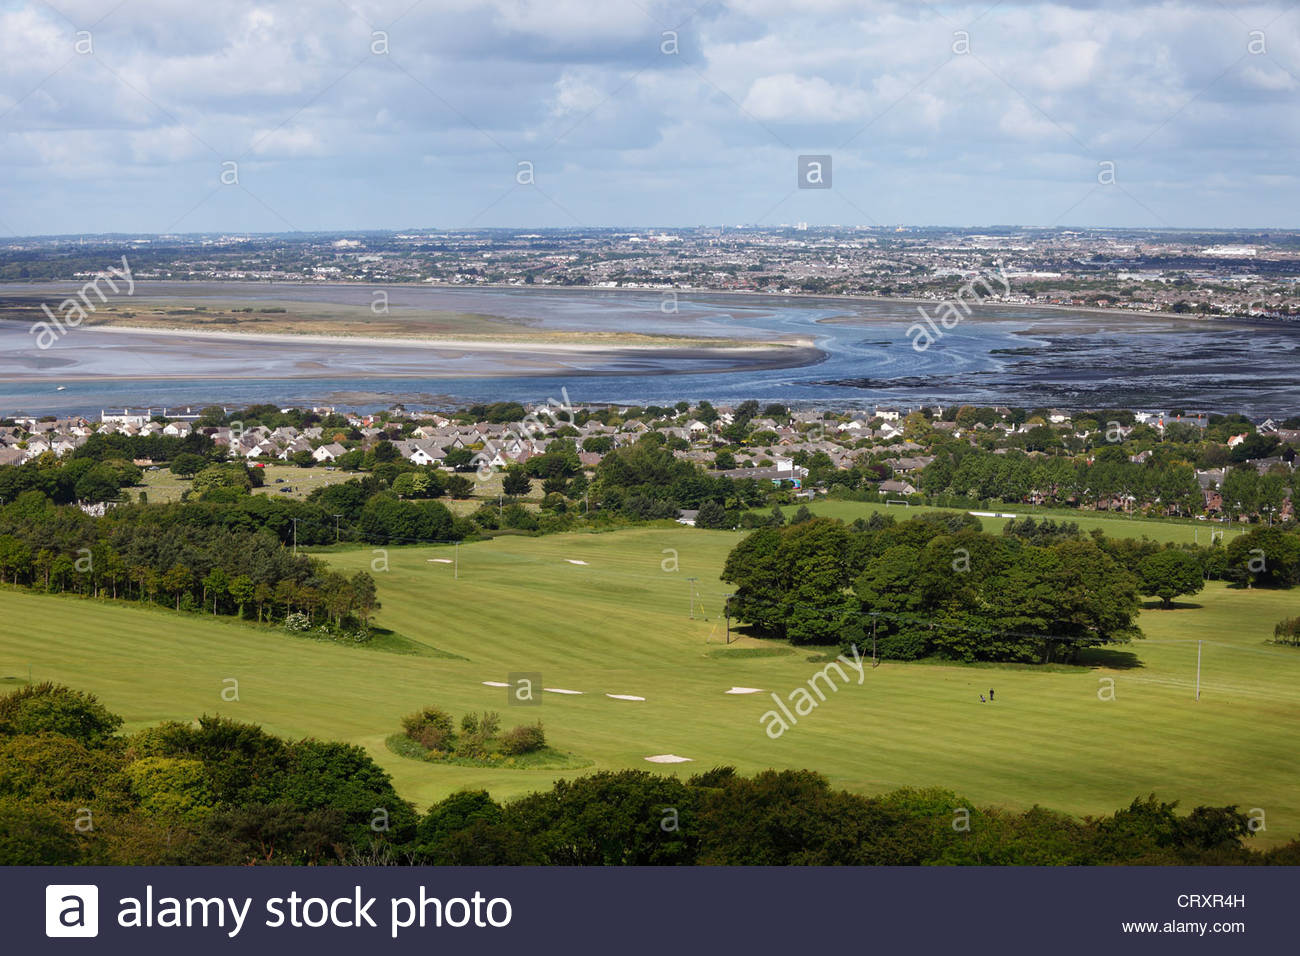 Ireland, Leinster, County Fingal, View of Howth Peninsula with Sutton - Stock Image